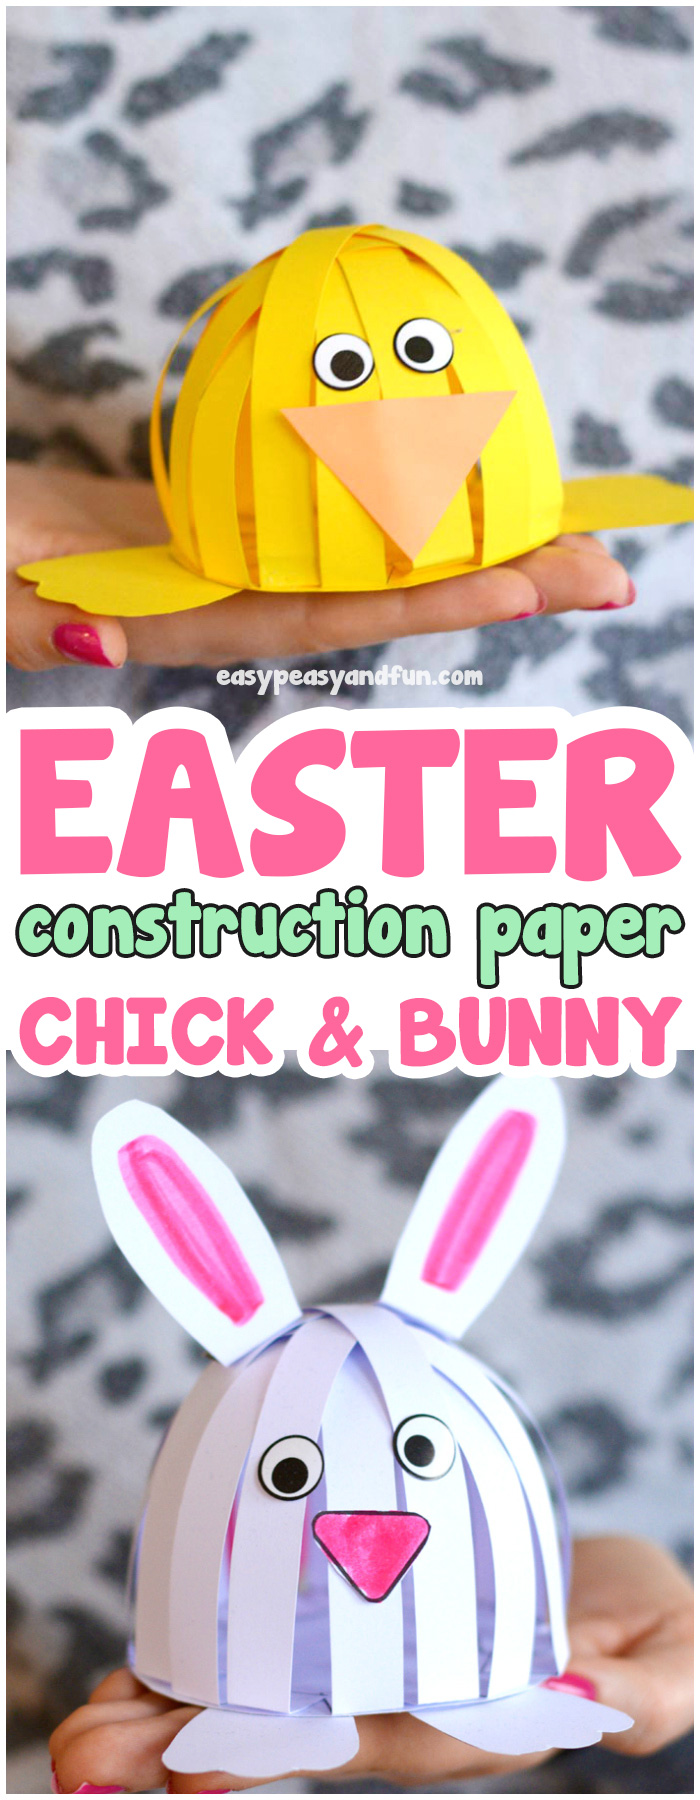 Simple Easter Construction Paper Craft for Kids to Make. #craftsforkids #bunnycrafts #papercraftsforkids